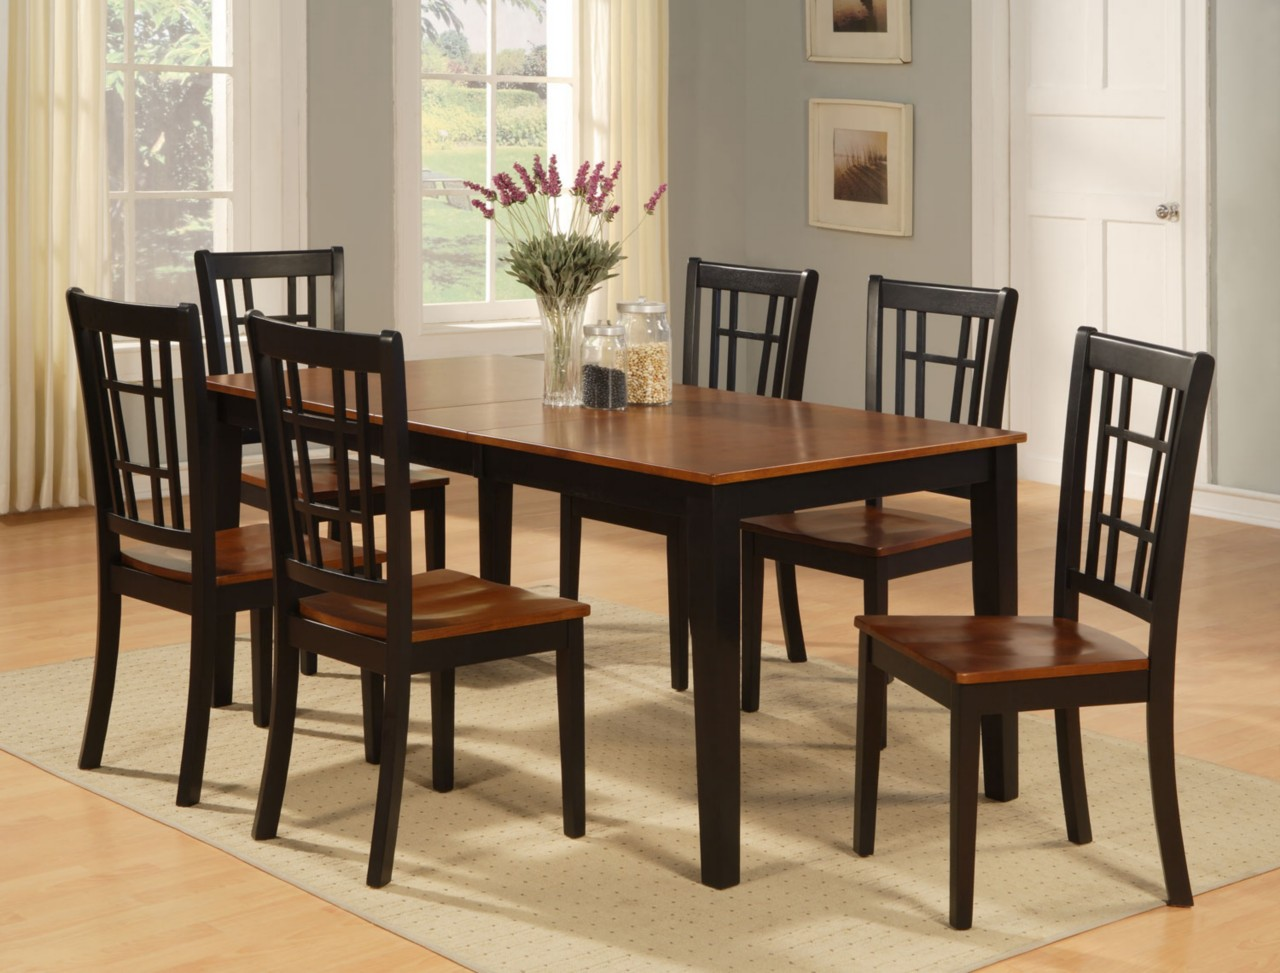 Dinette kitchen dining room set 7pc table and 6 chairs ebay for Kitchen table and chairs set